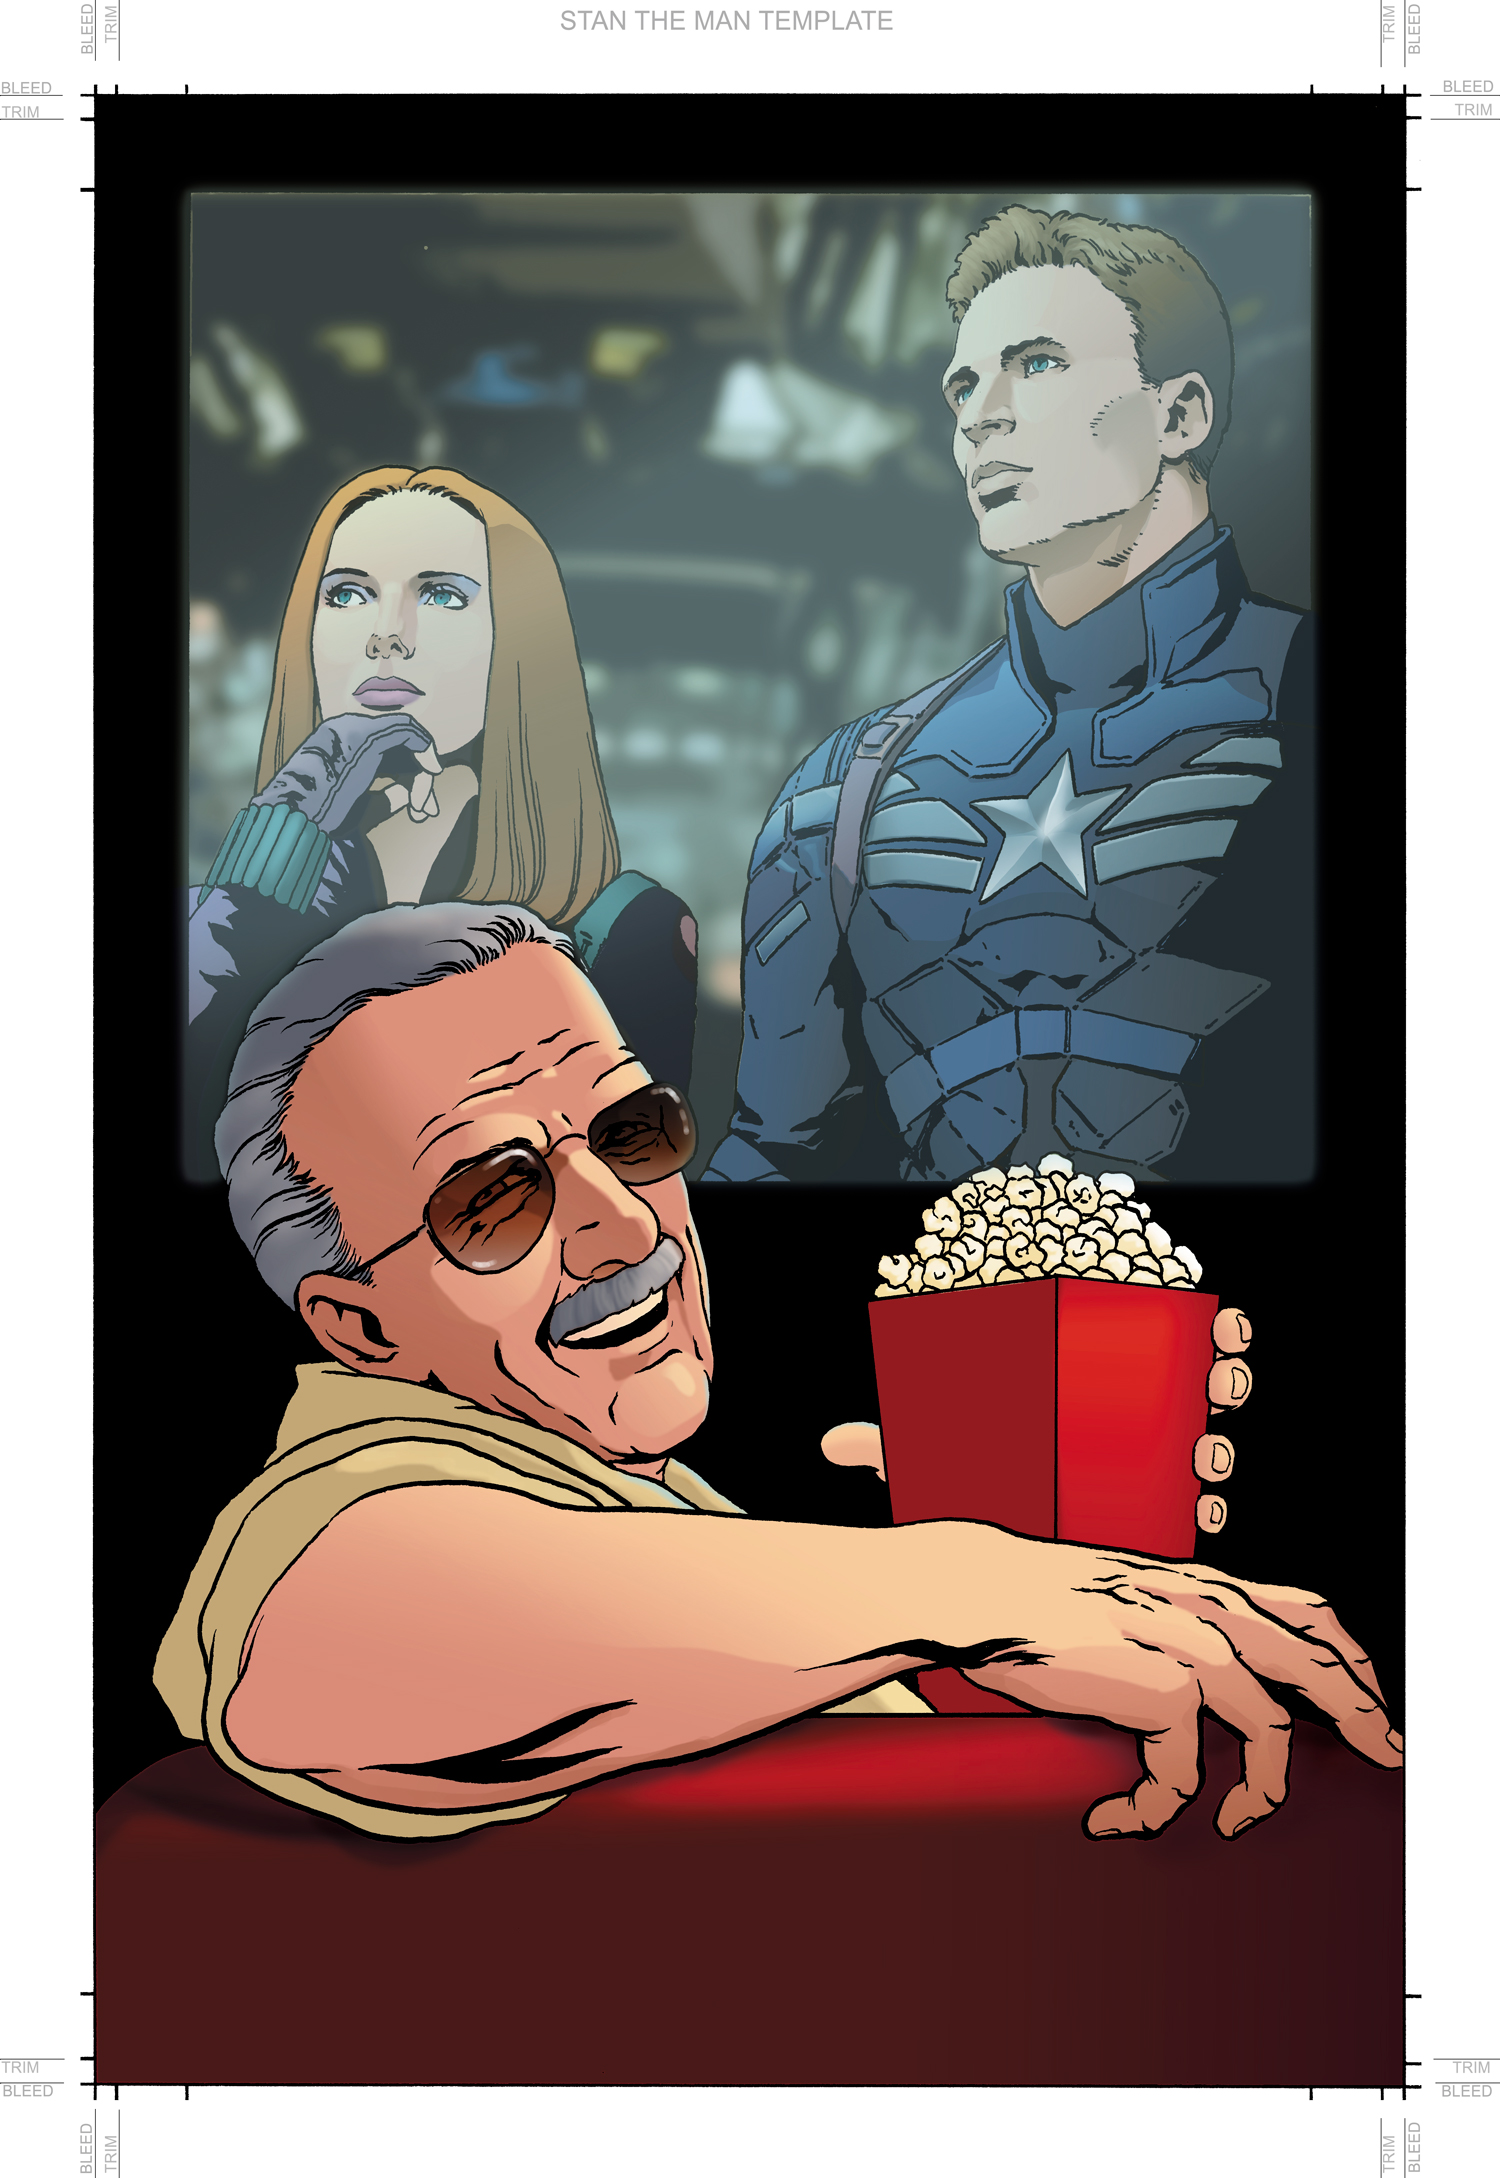 Stan at the movies